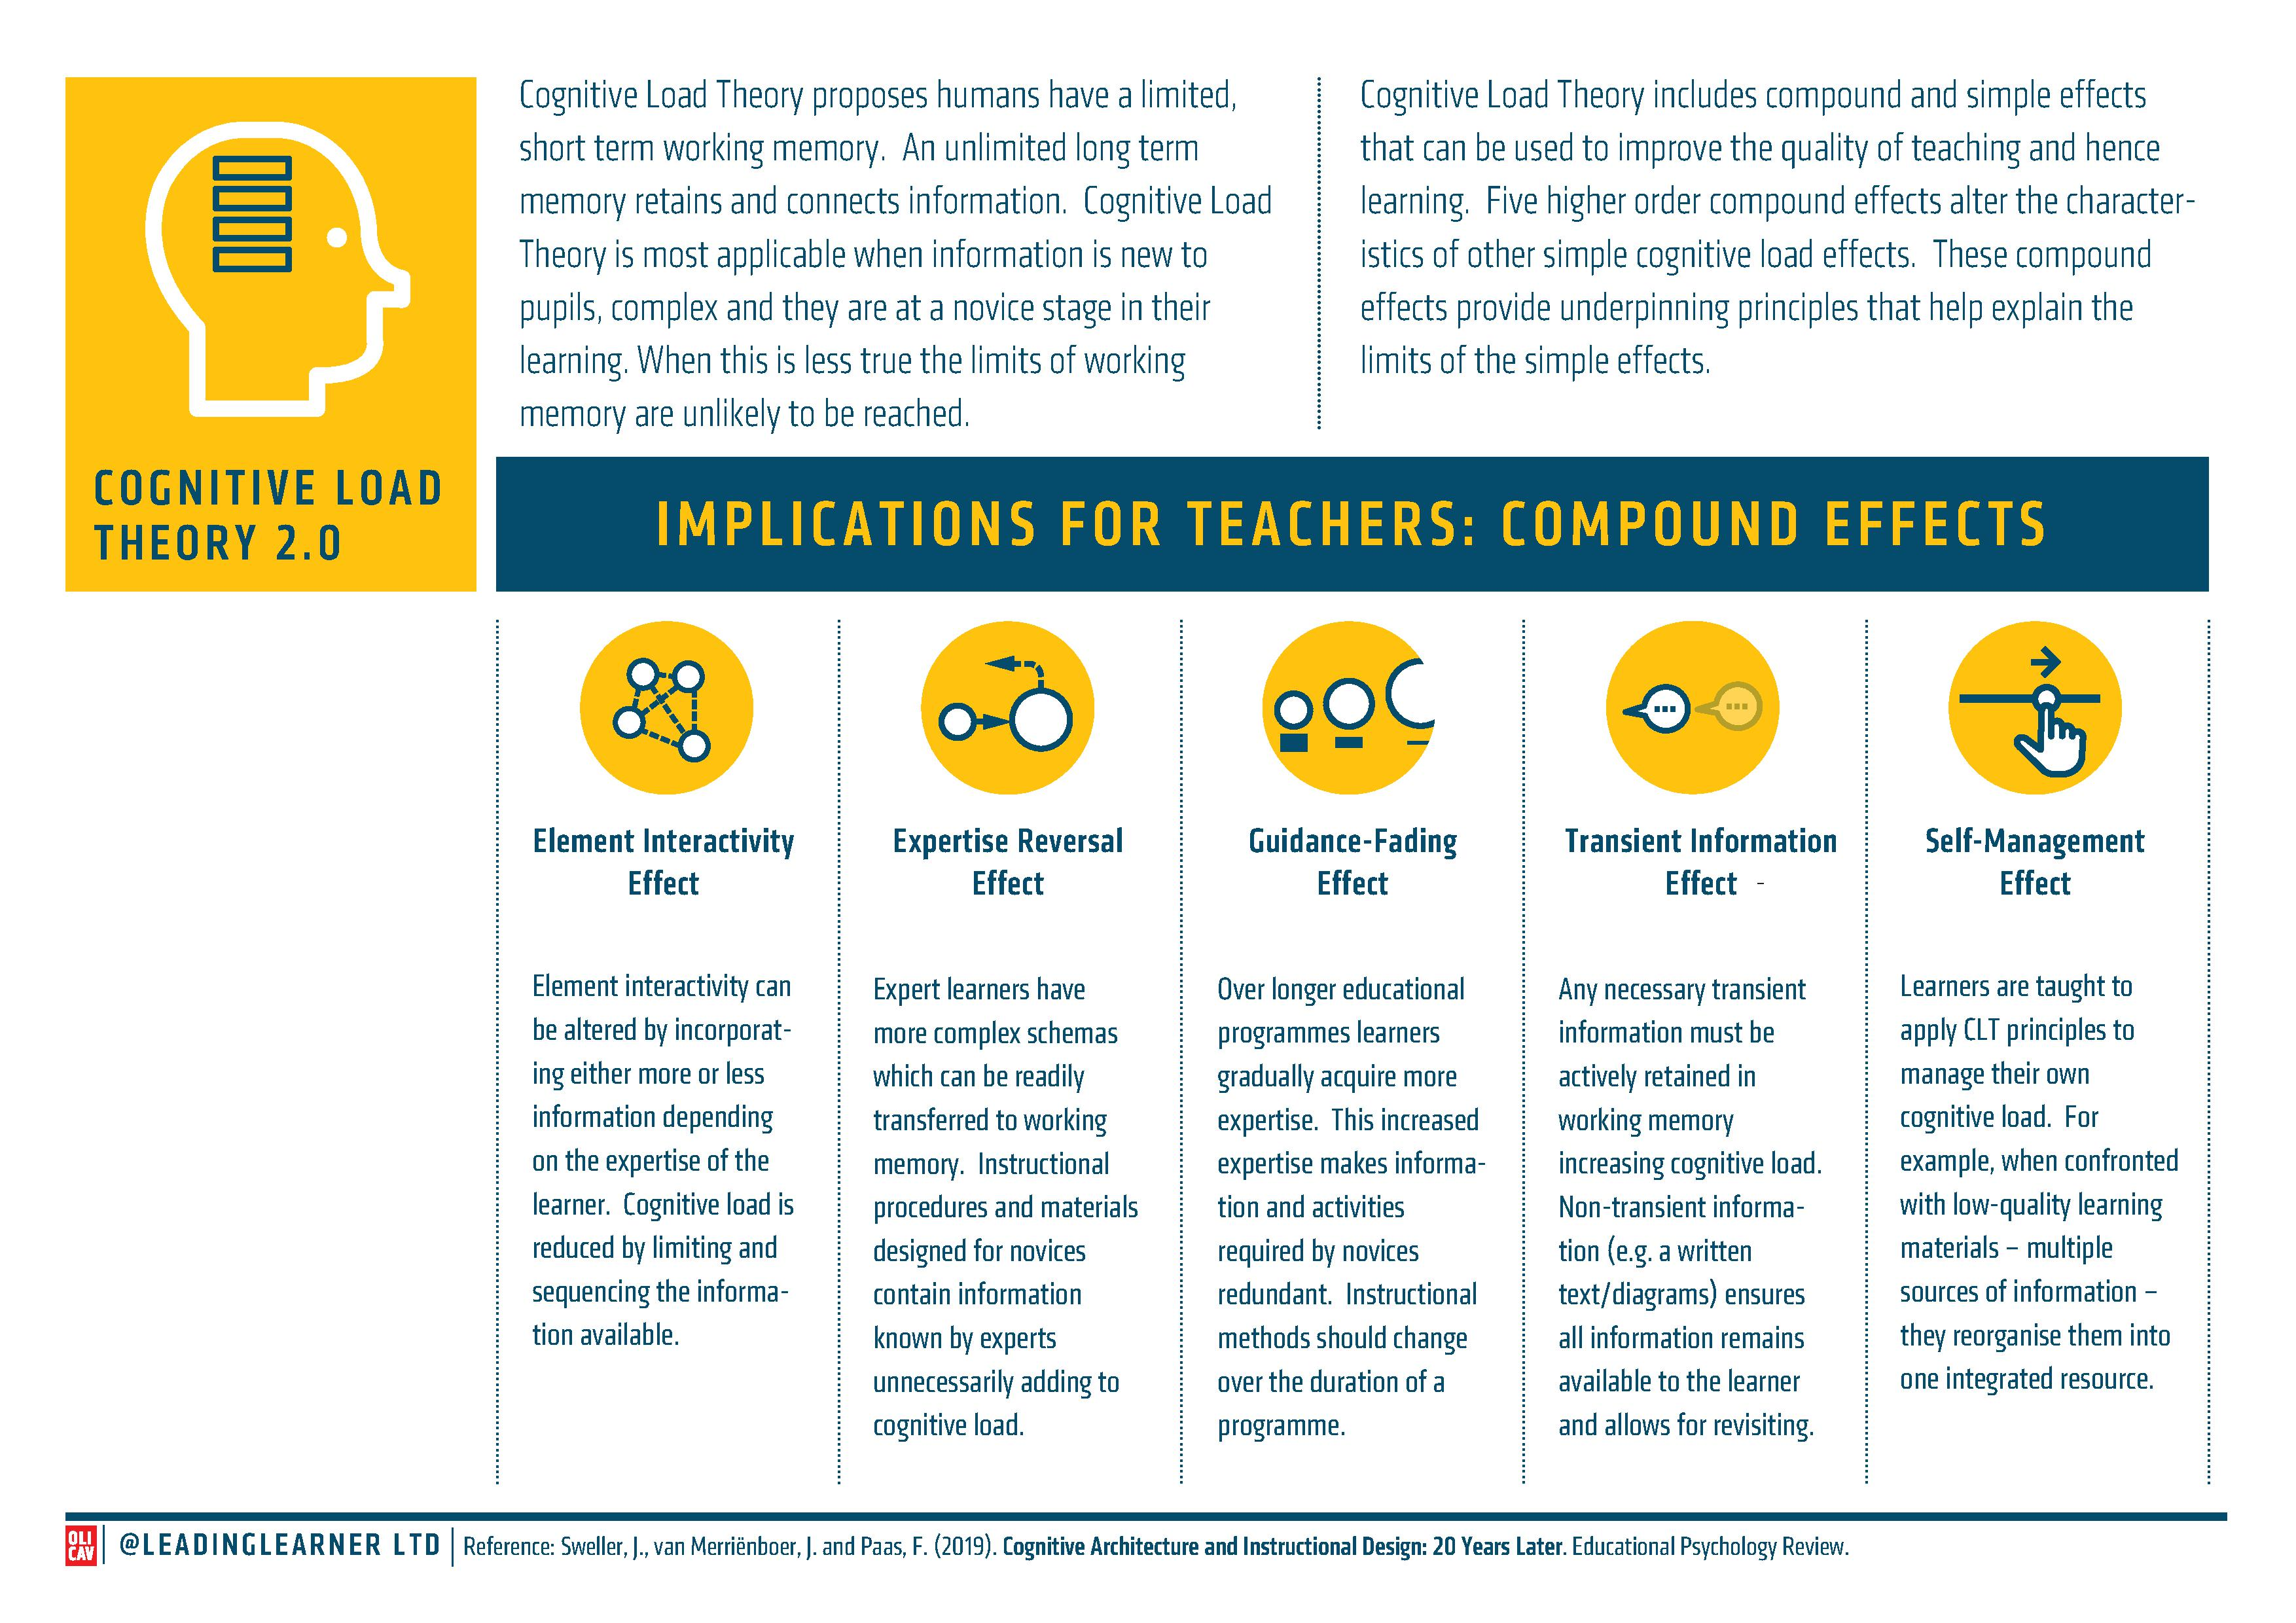 Cognitive Load Theory 5 Underpinning Principles The Compound Effects Leadinglearner